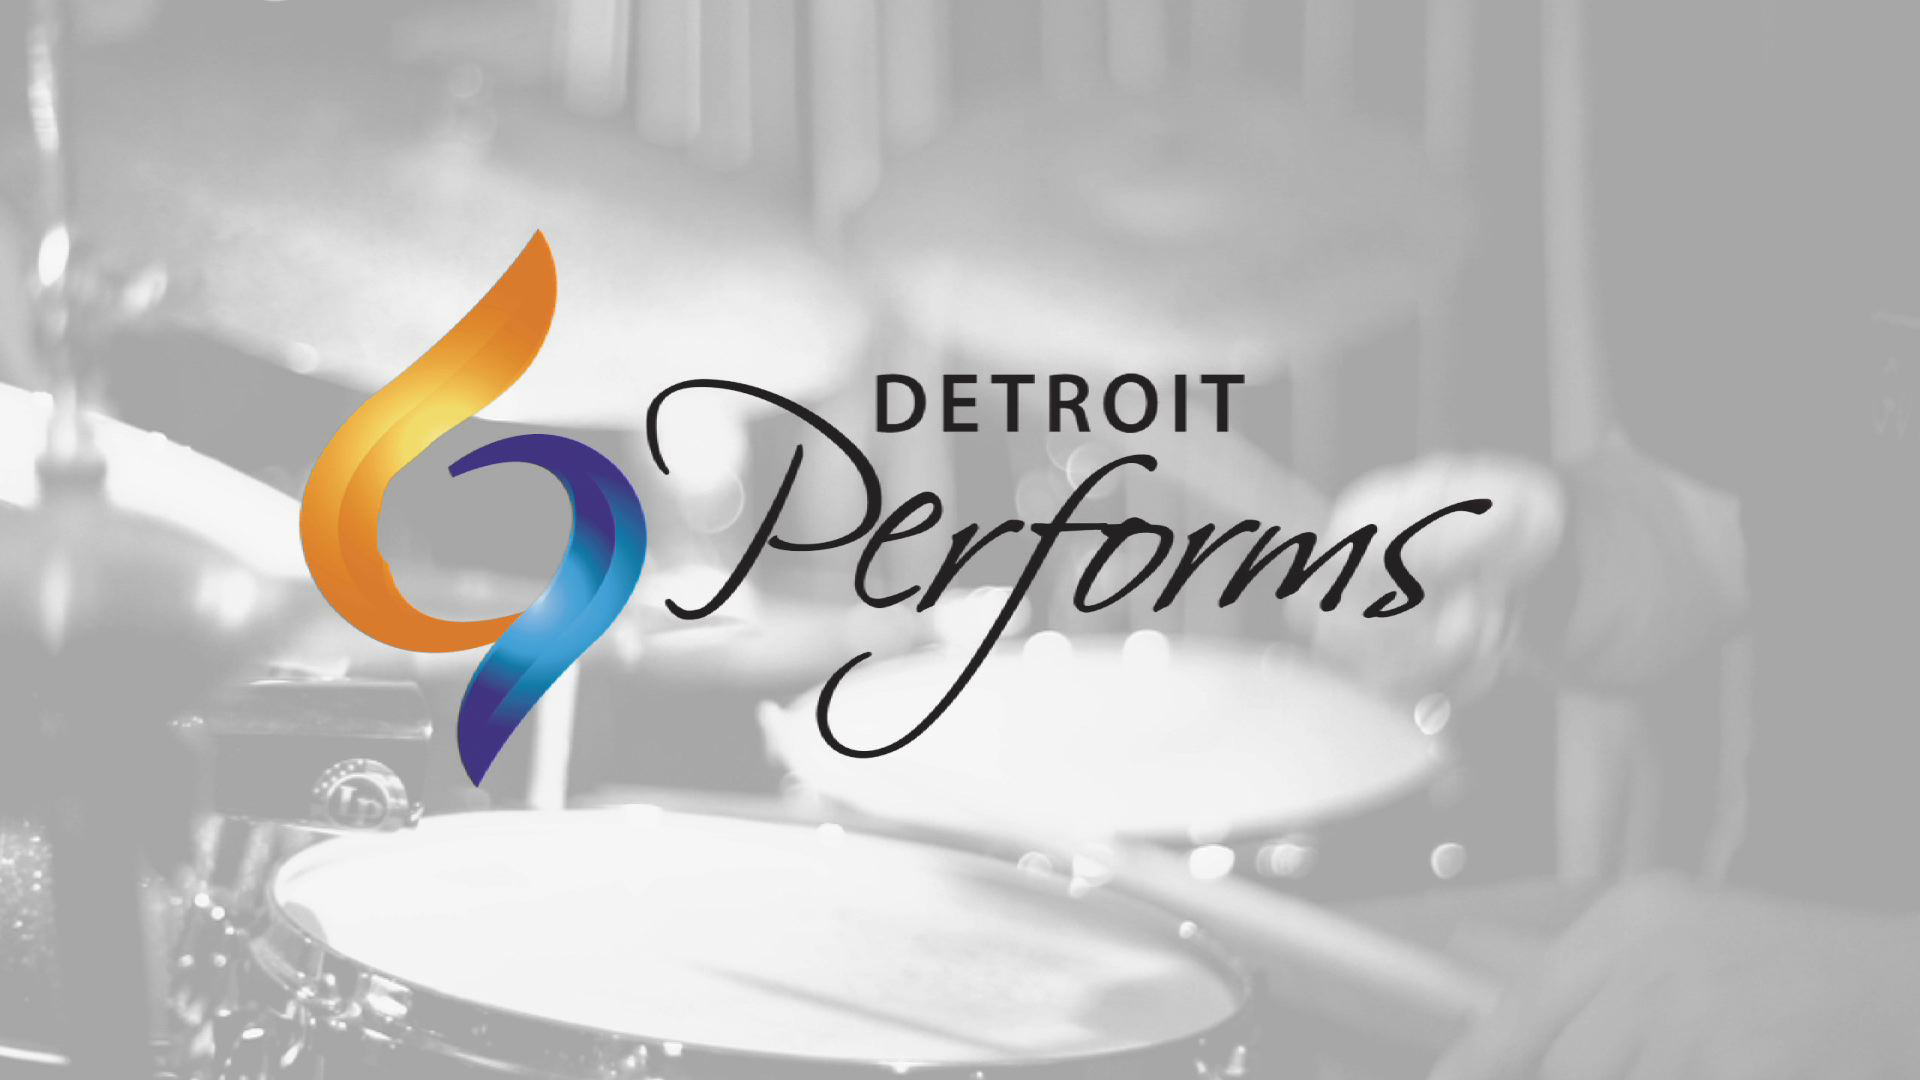 Detroit Performs | DPTV | Michigan